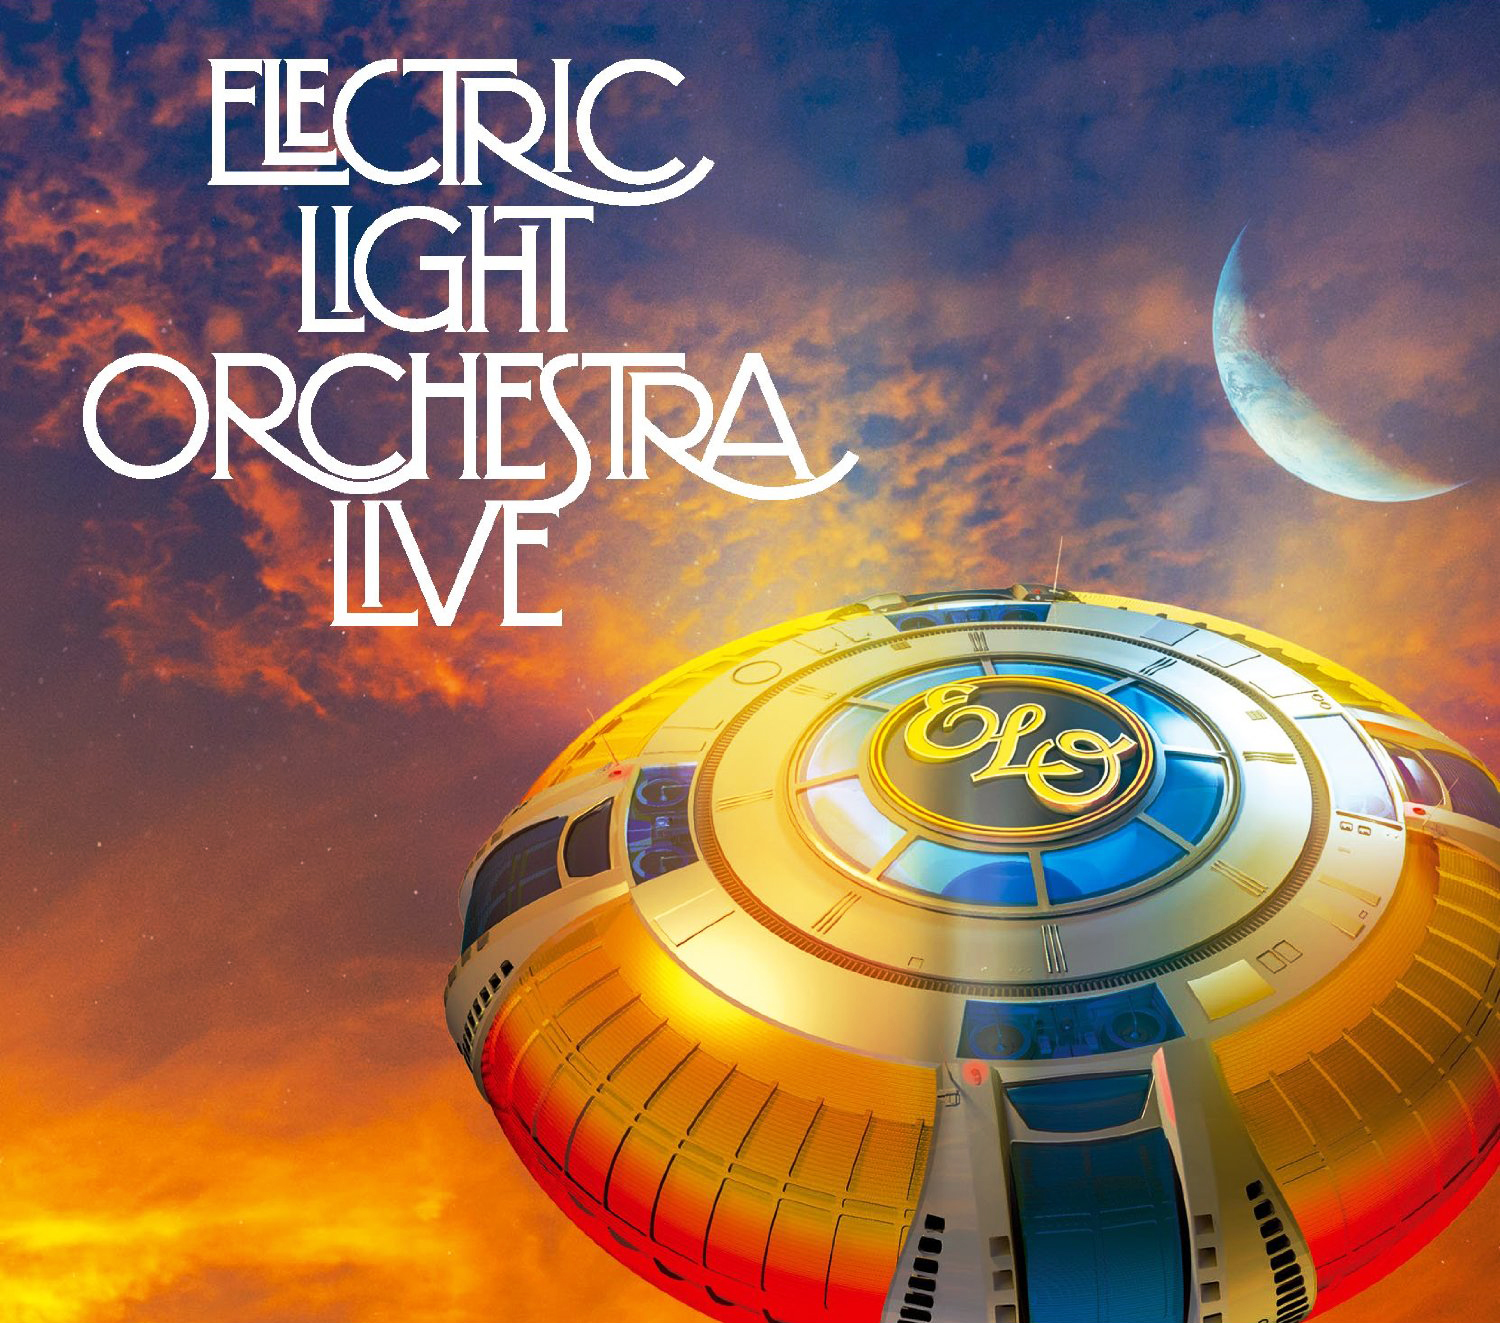 ELECTRIC LIGHT ORCHESTRA WALLPAPERS FREE Wallpapers Background 1500x1323